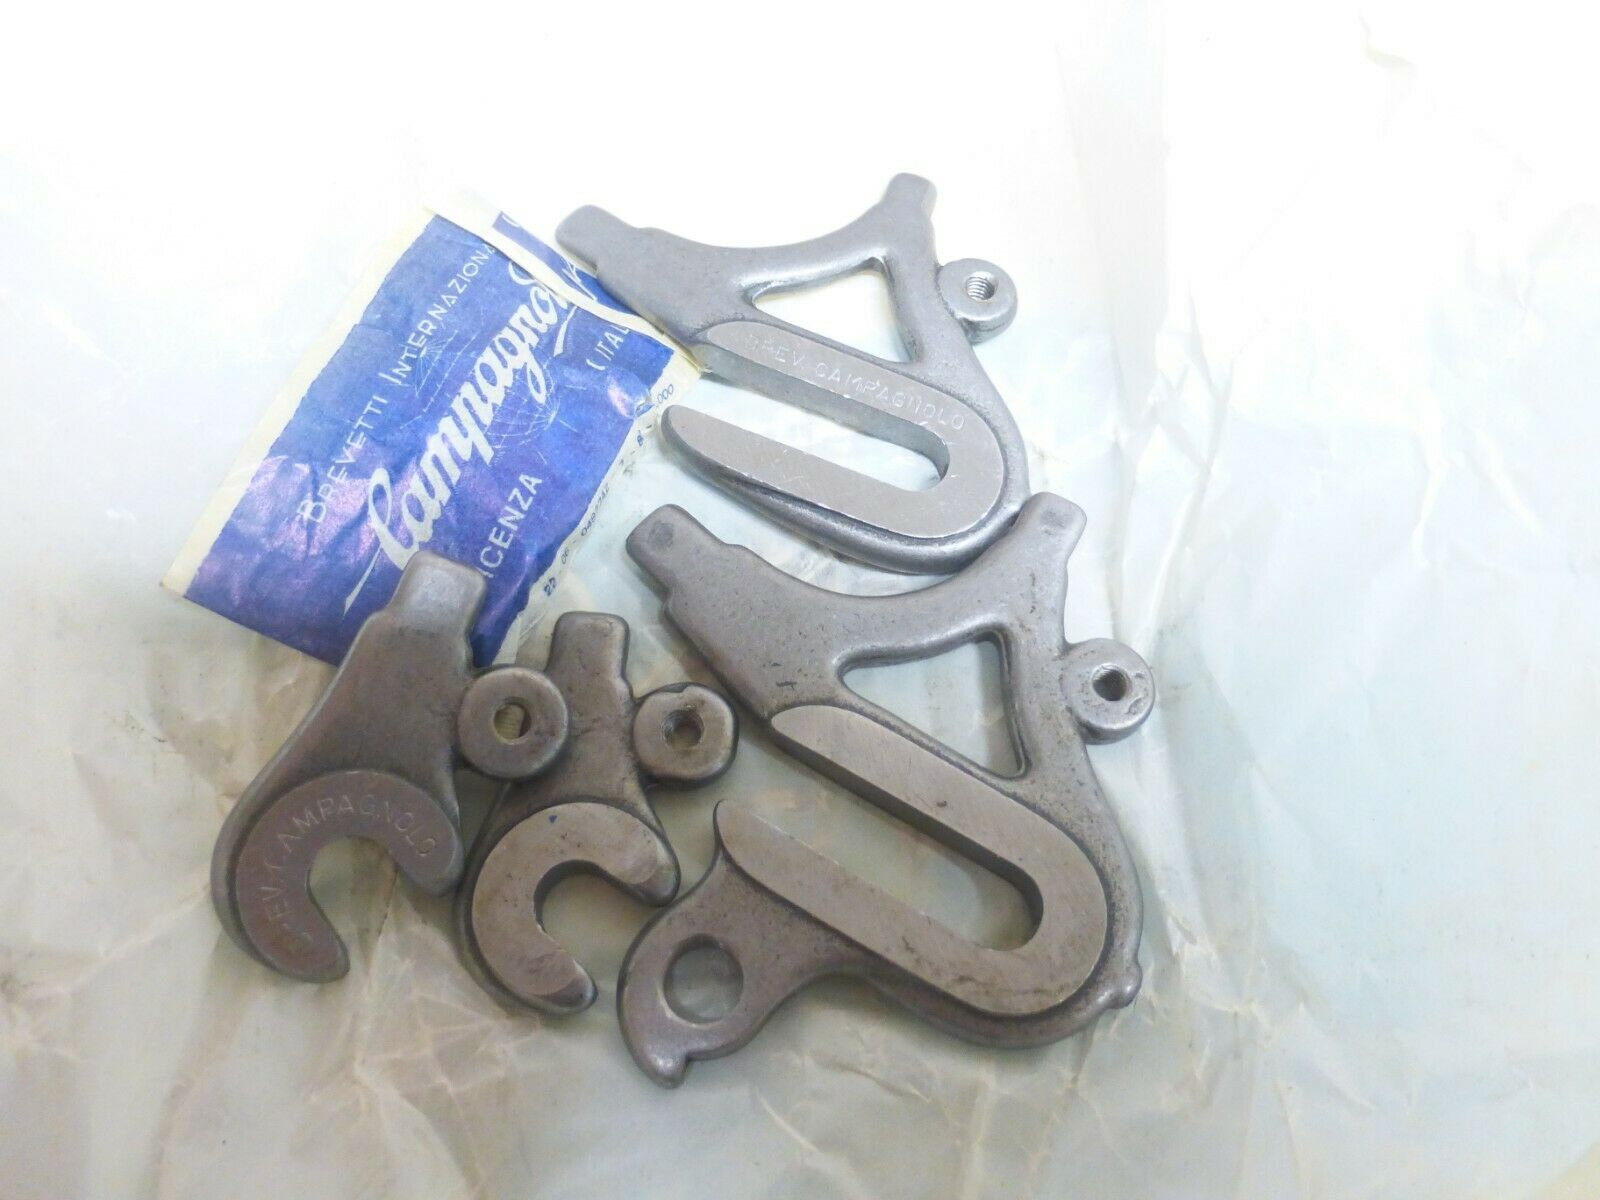 Campagnolo Dropout Set Vintage Frame Dropouts 1010 With Eyelets Brazeons B NOS for sale online